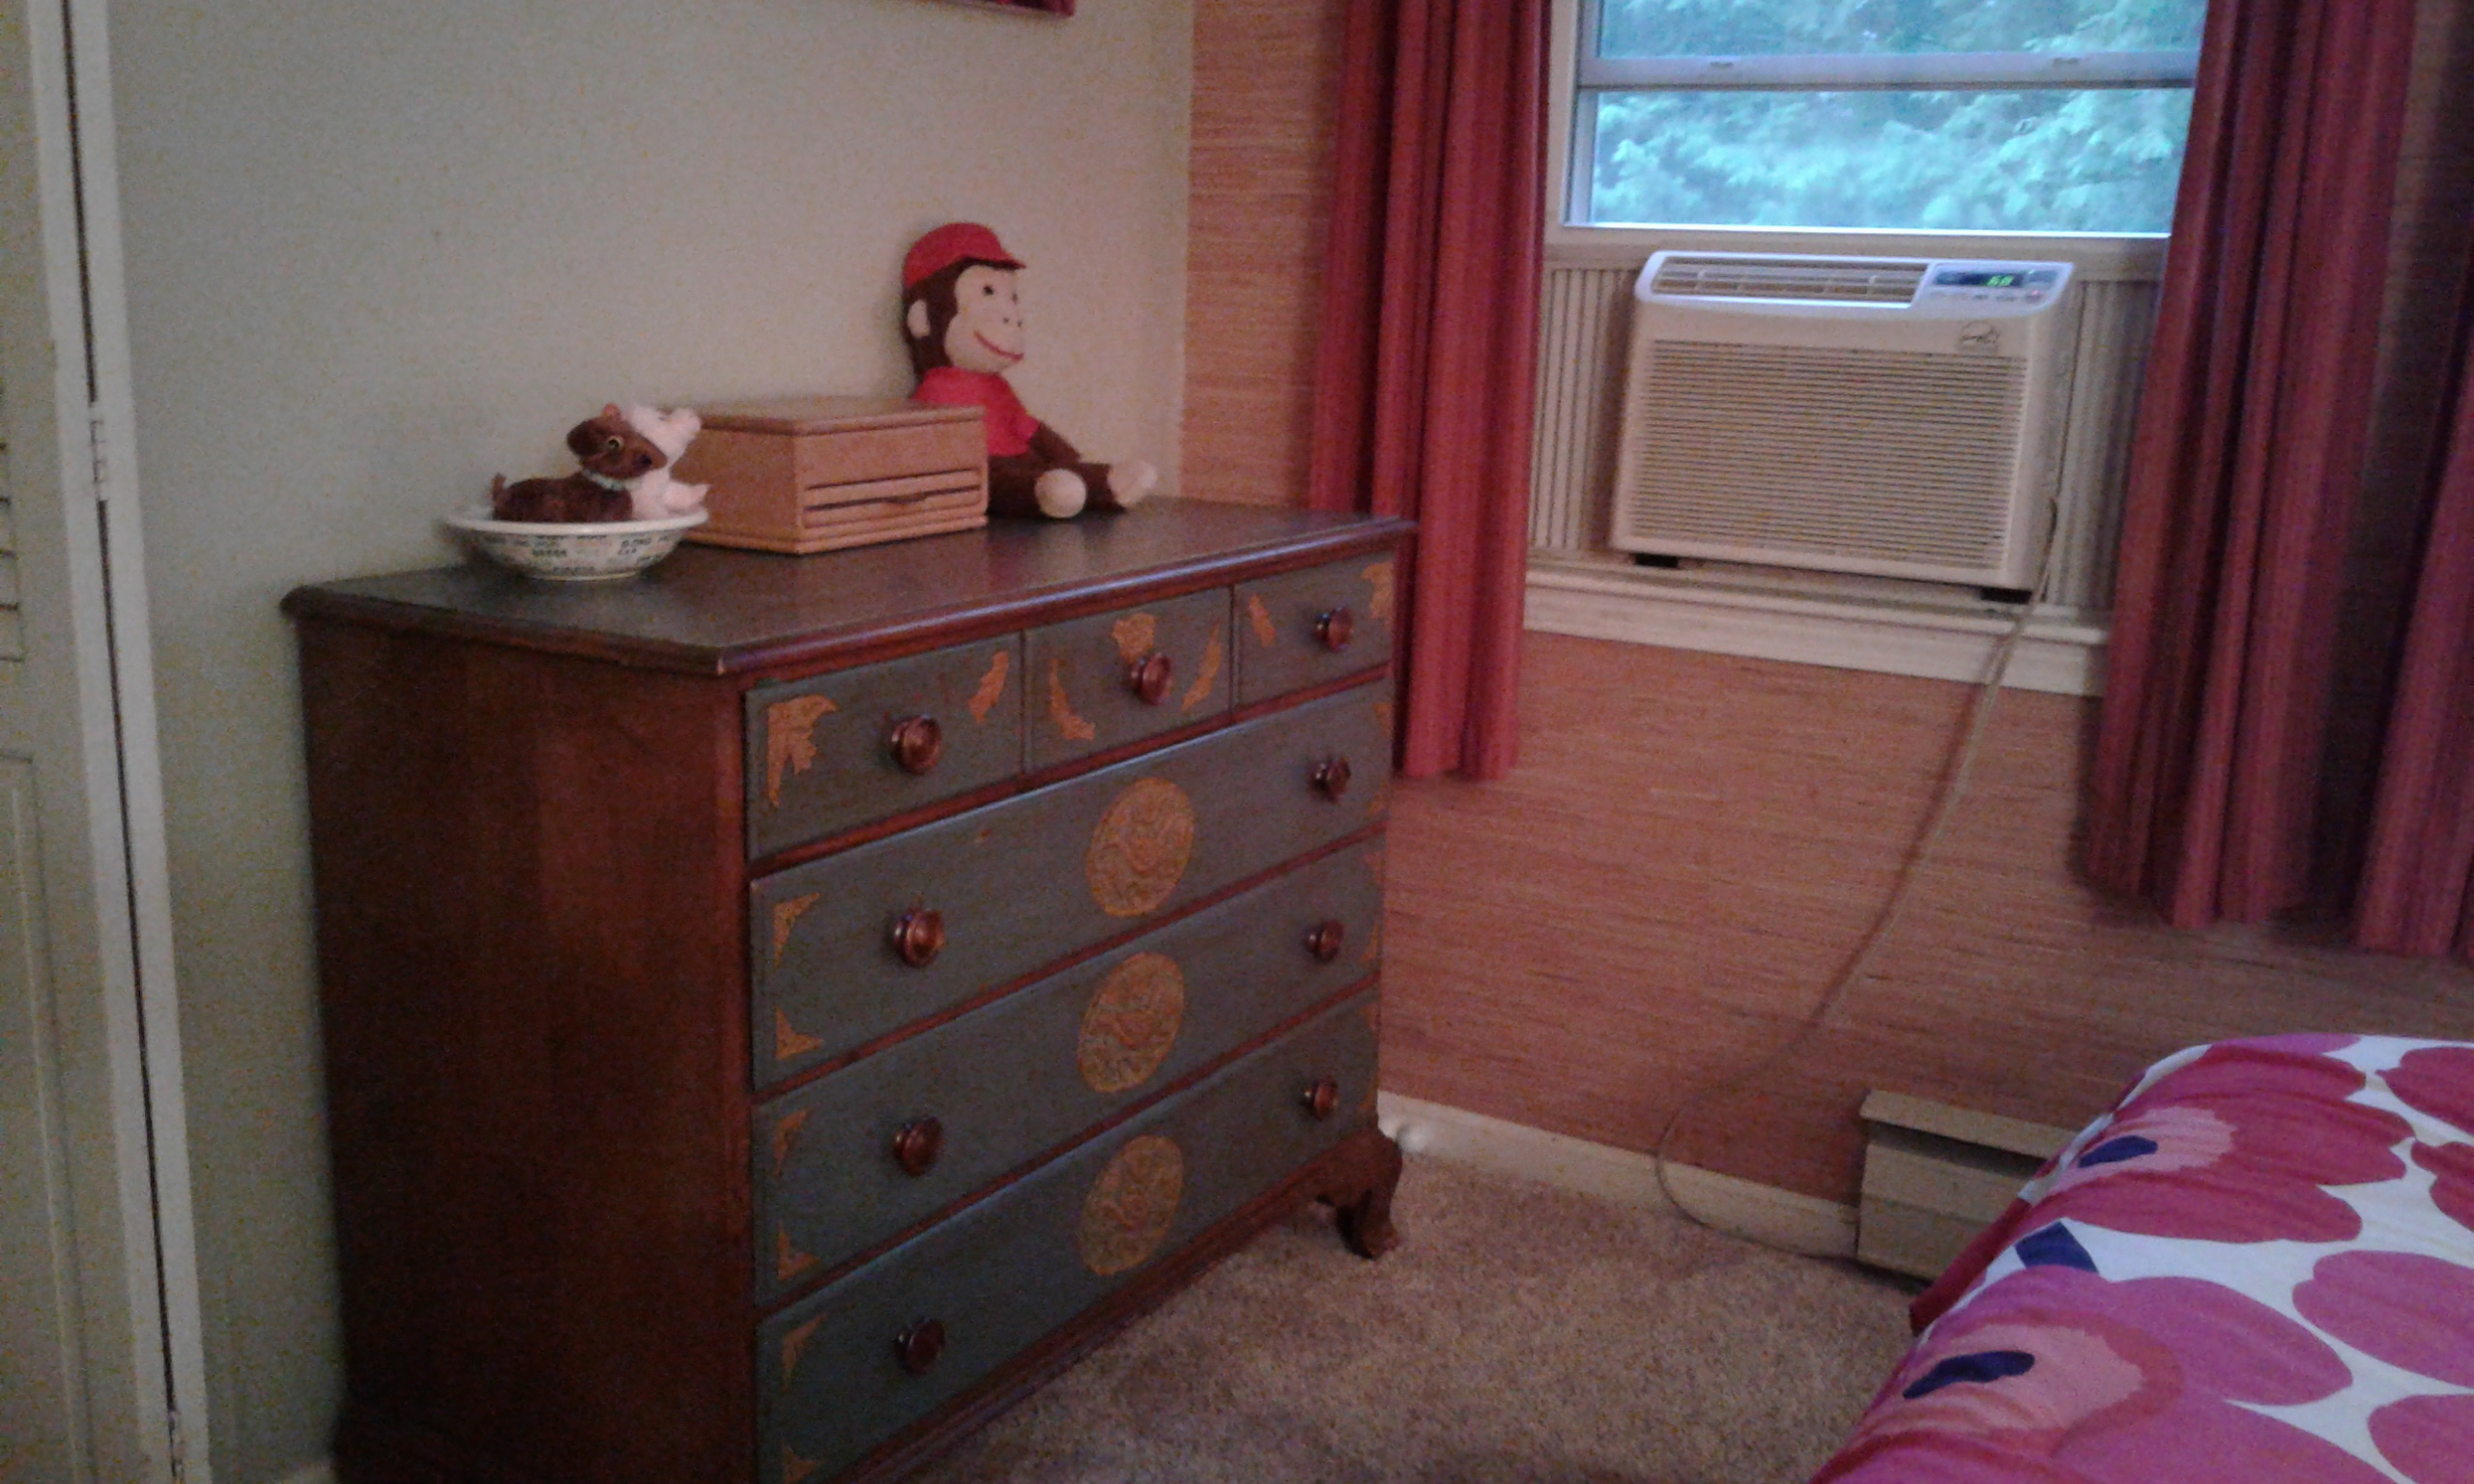 Clutter cleared from the dresser top